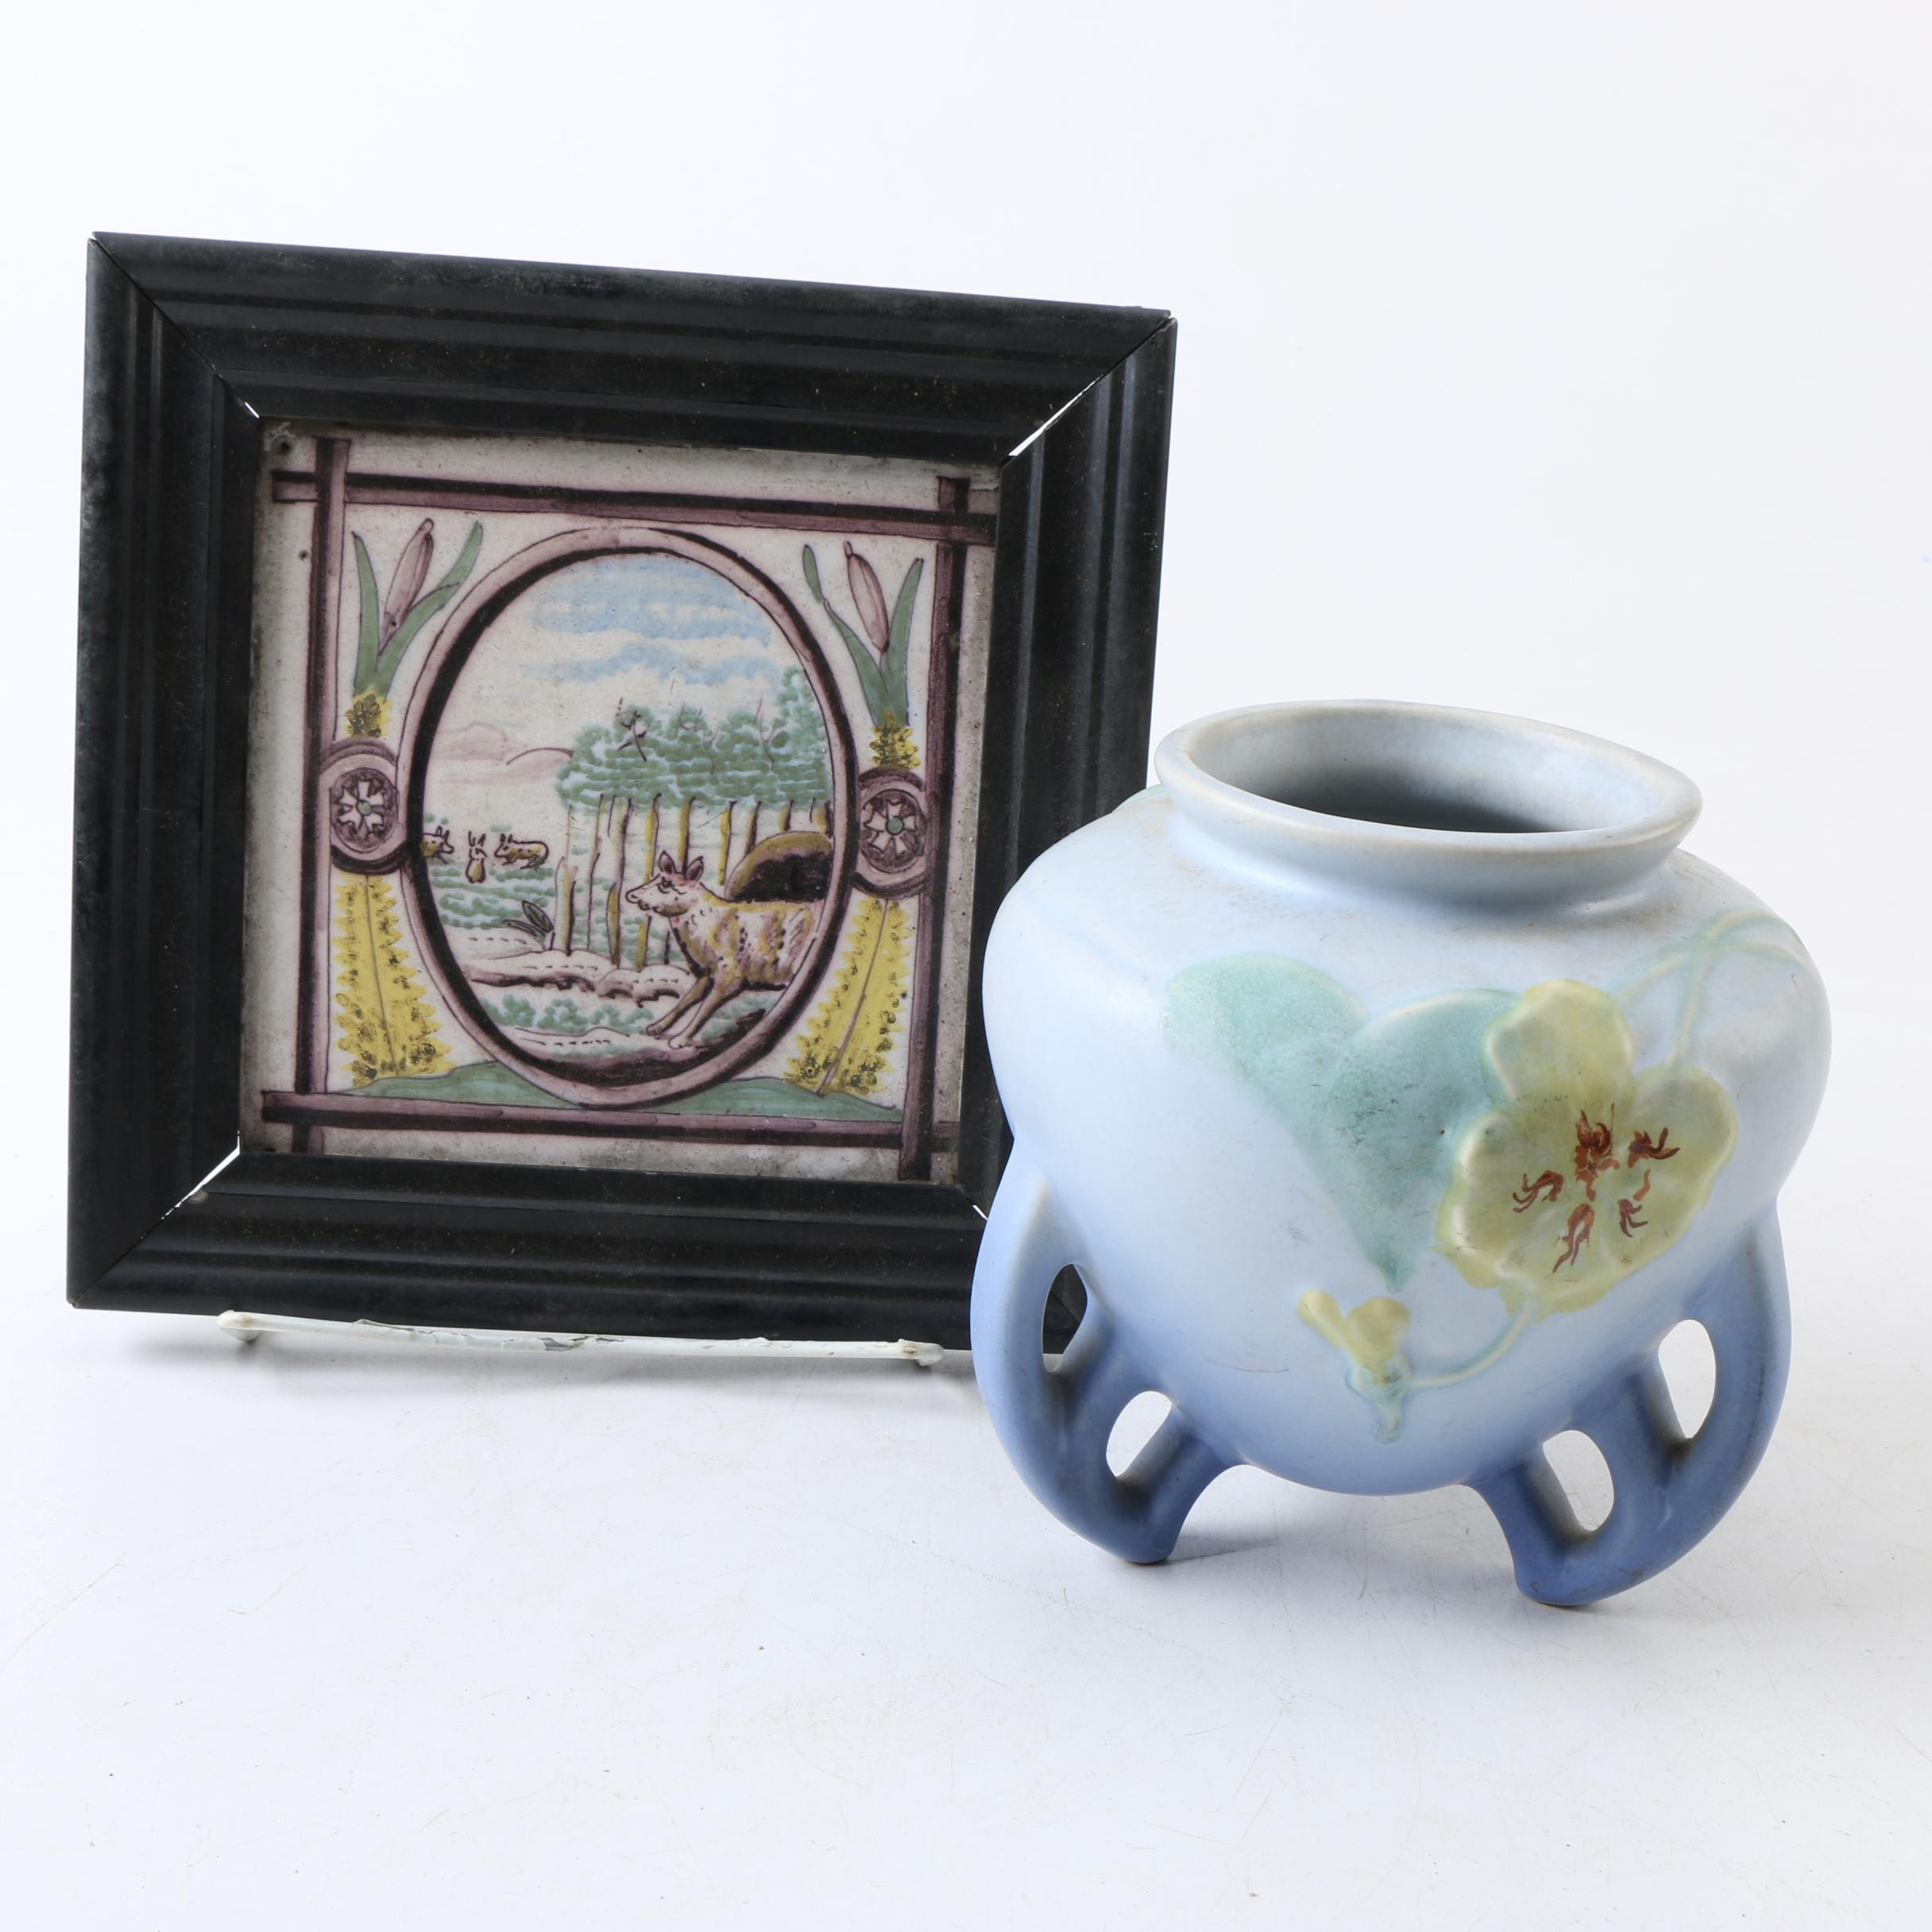 Framed Painting and Vase